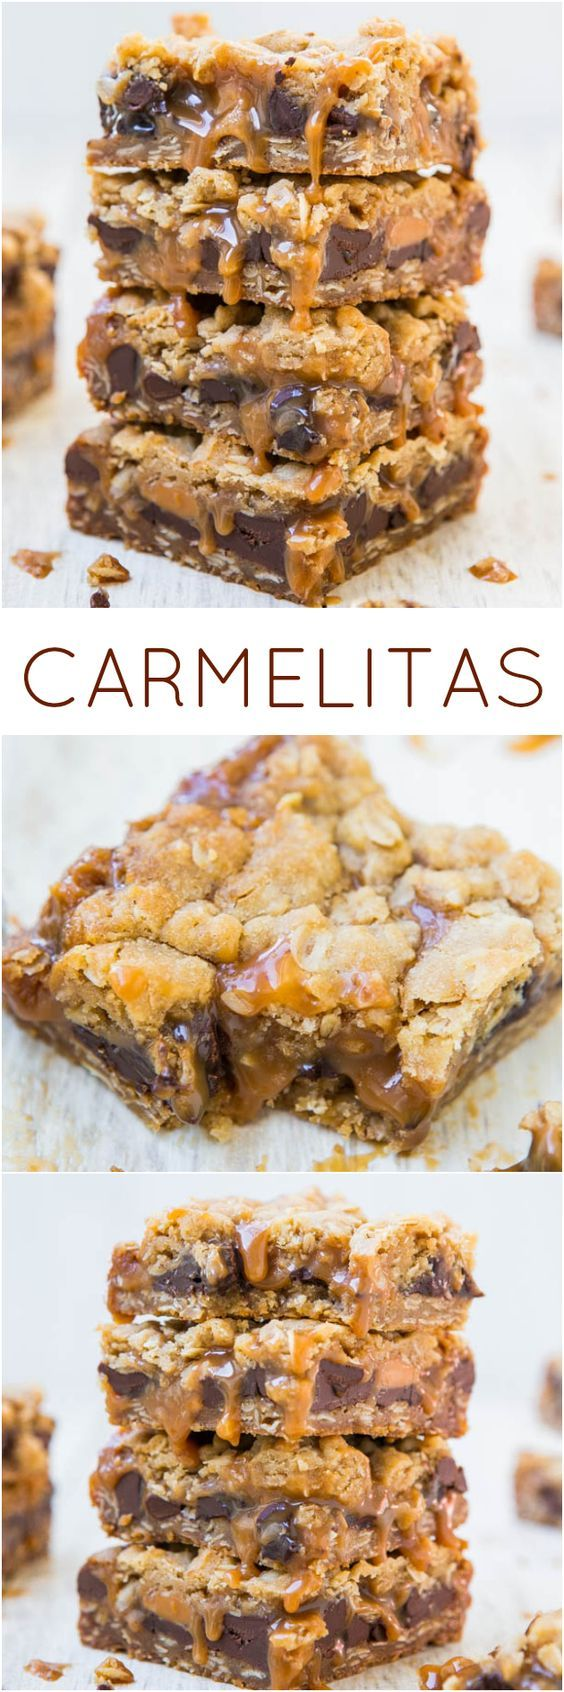 Carmelitas - Easy one-bowl no-mixer recipe. With a name like that they have to be good!! *Had a friend make these for a cookie exchange and they were AHmazing!